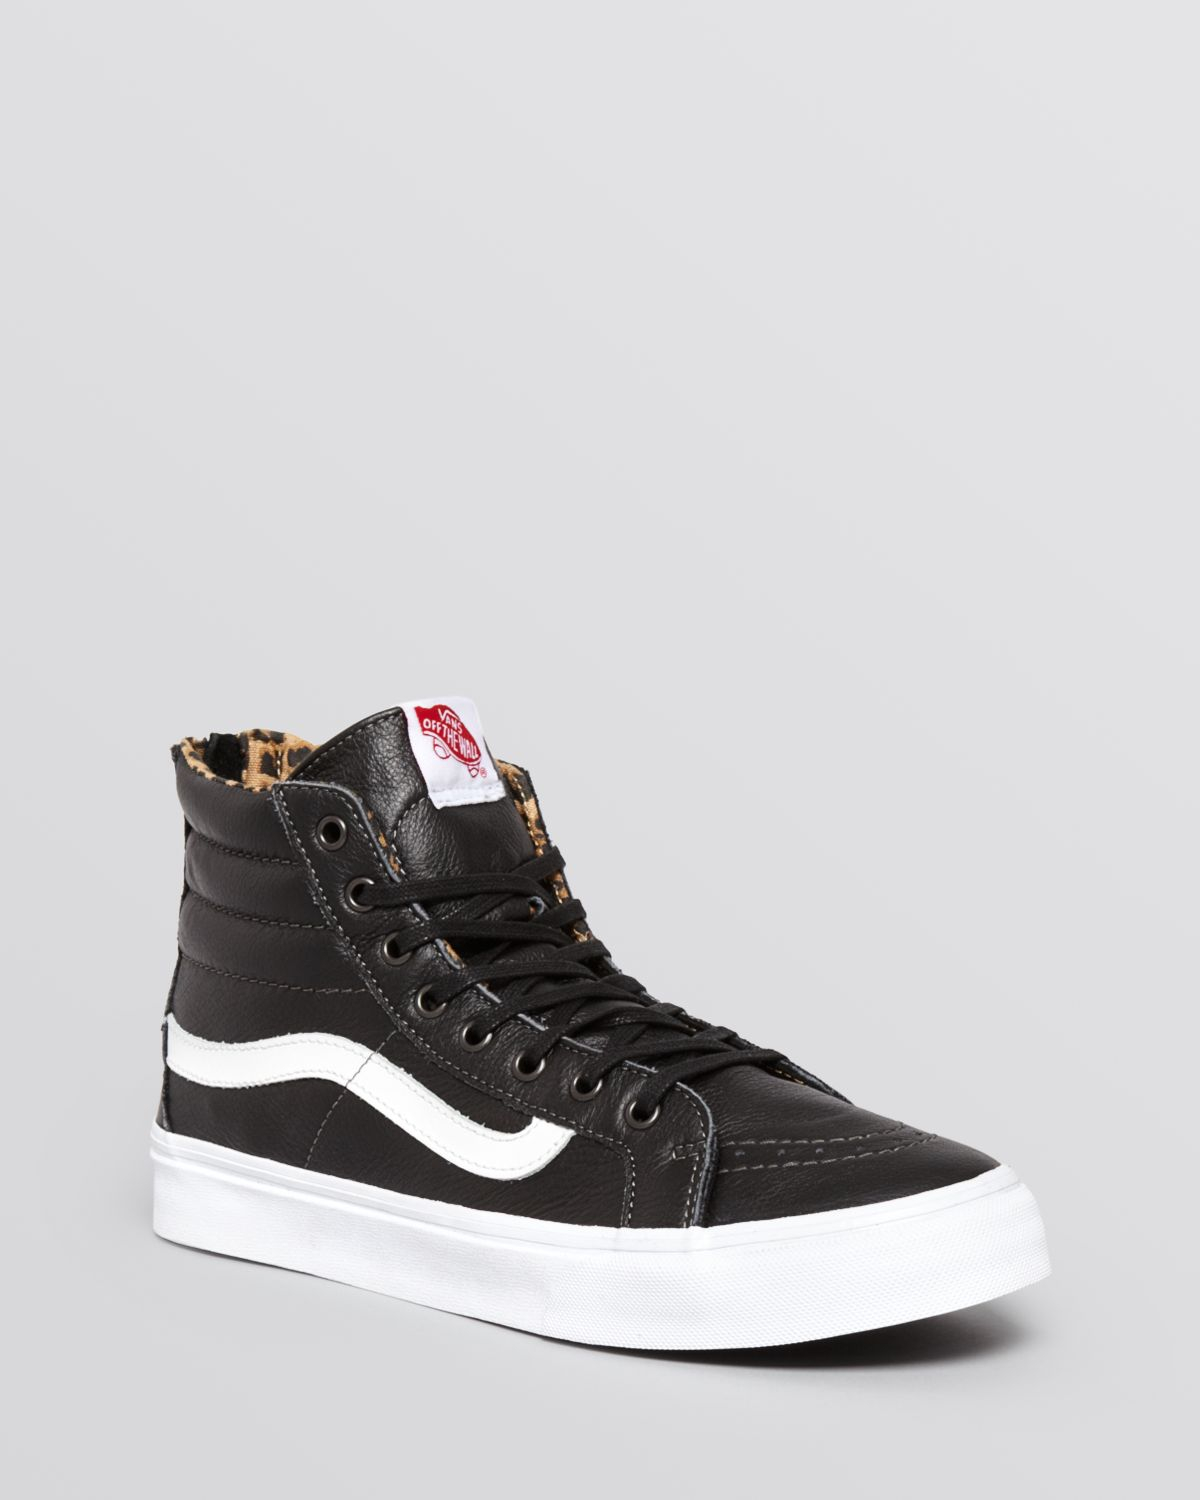 f07ab01672 Lyst - Vans Lace Up High Top Sneakers - Slim in Black